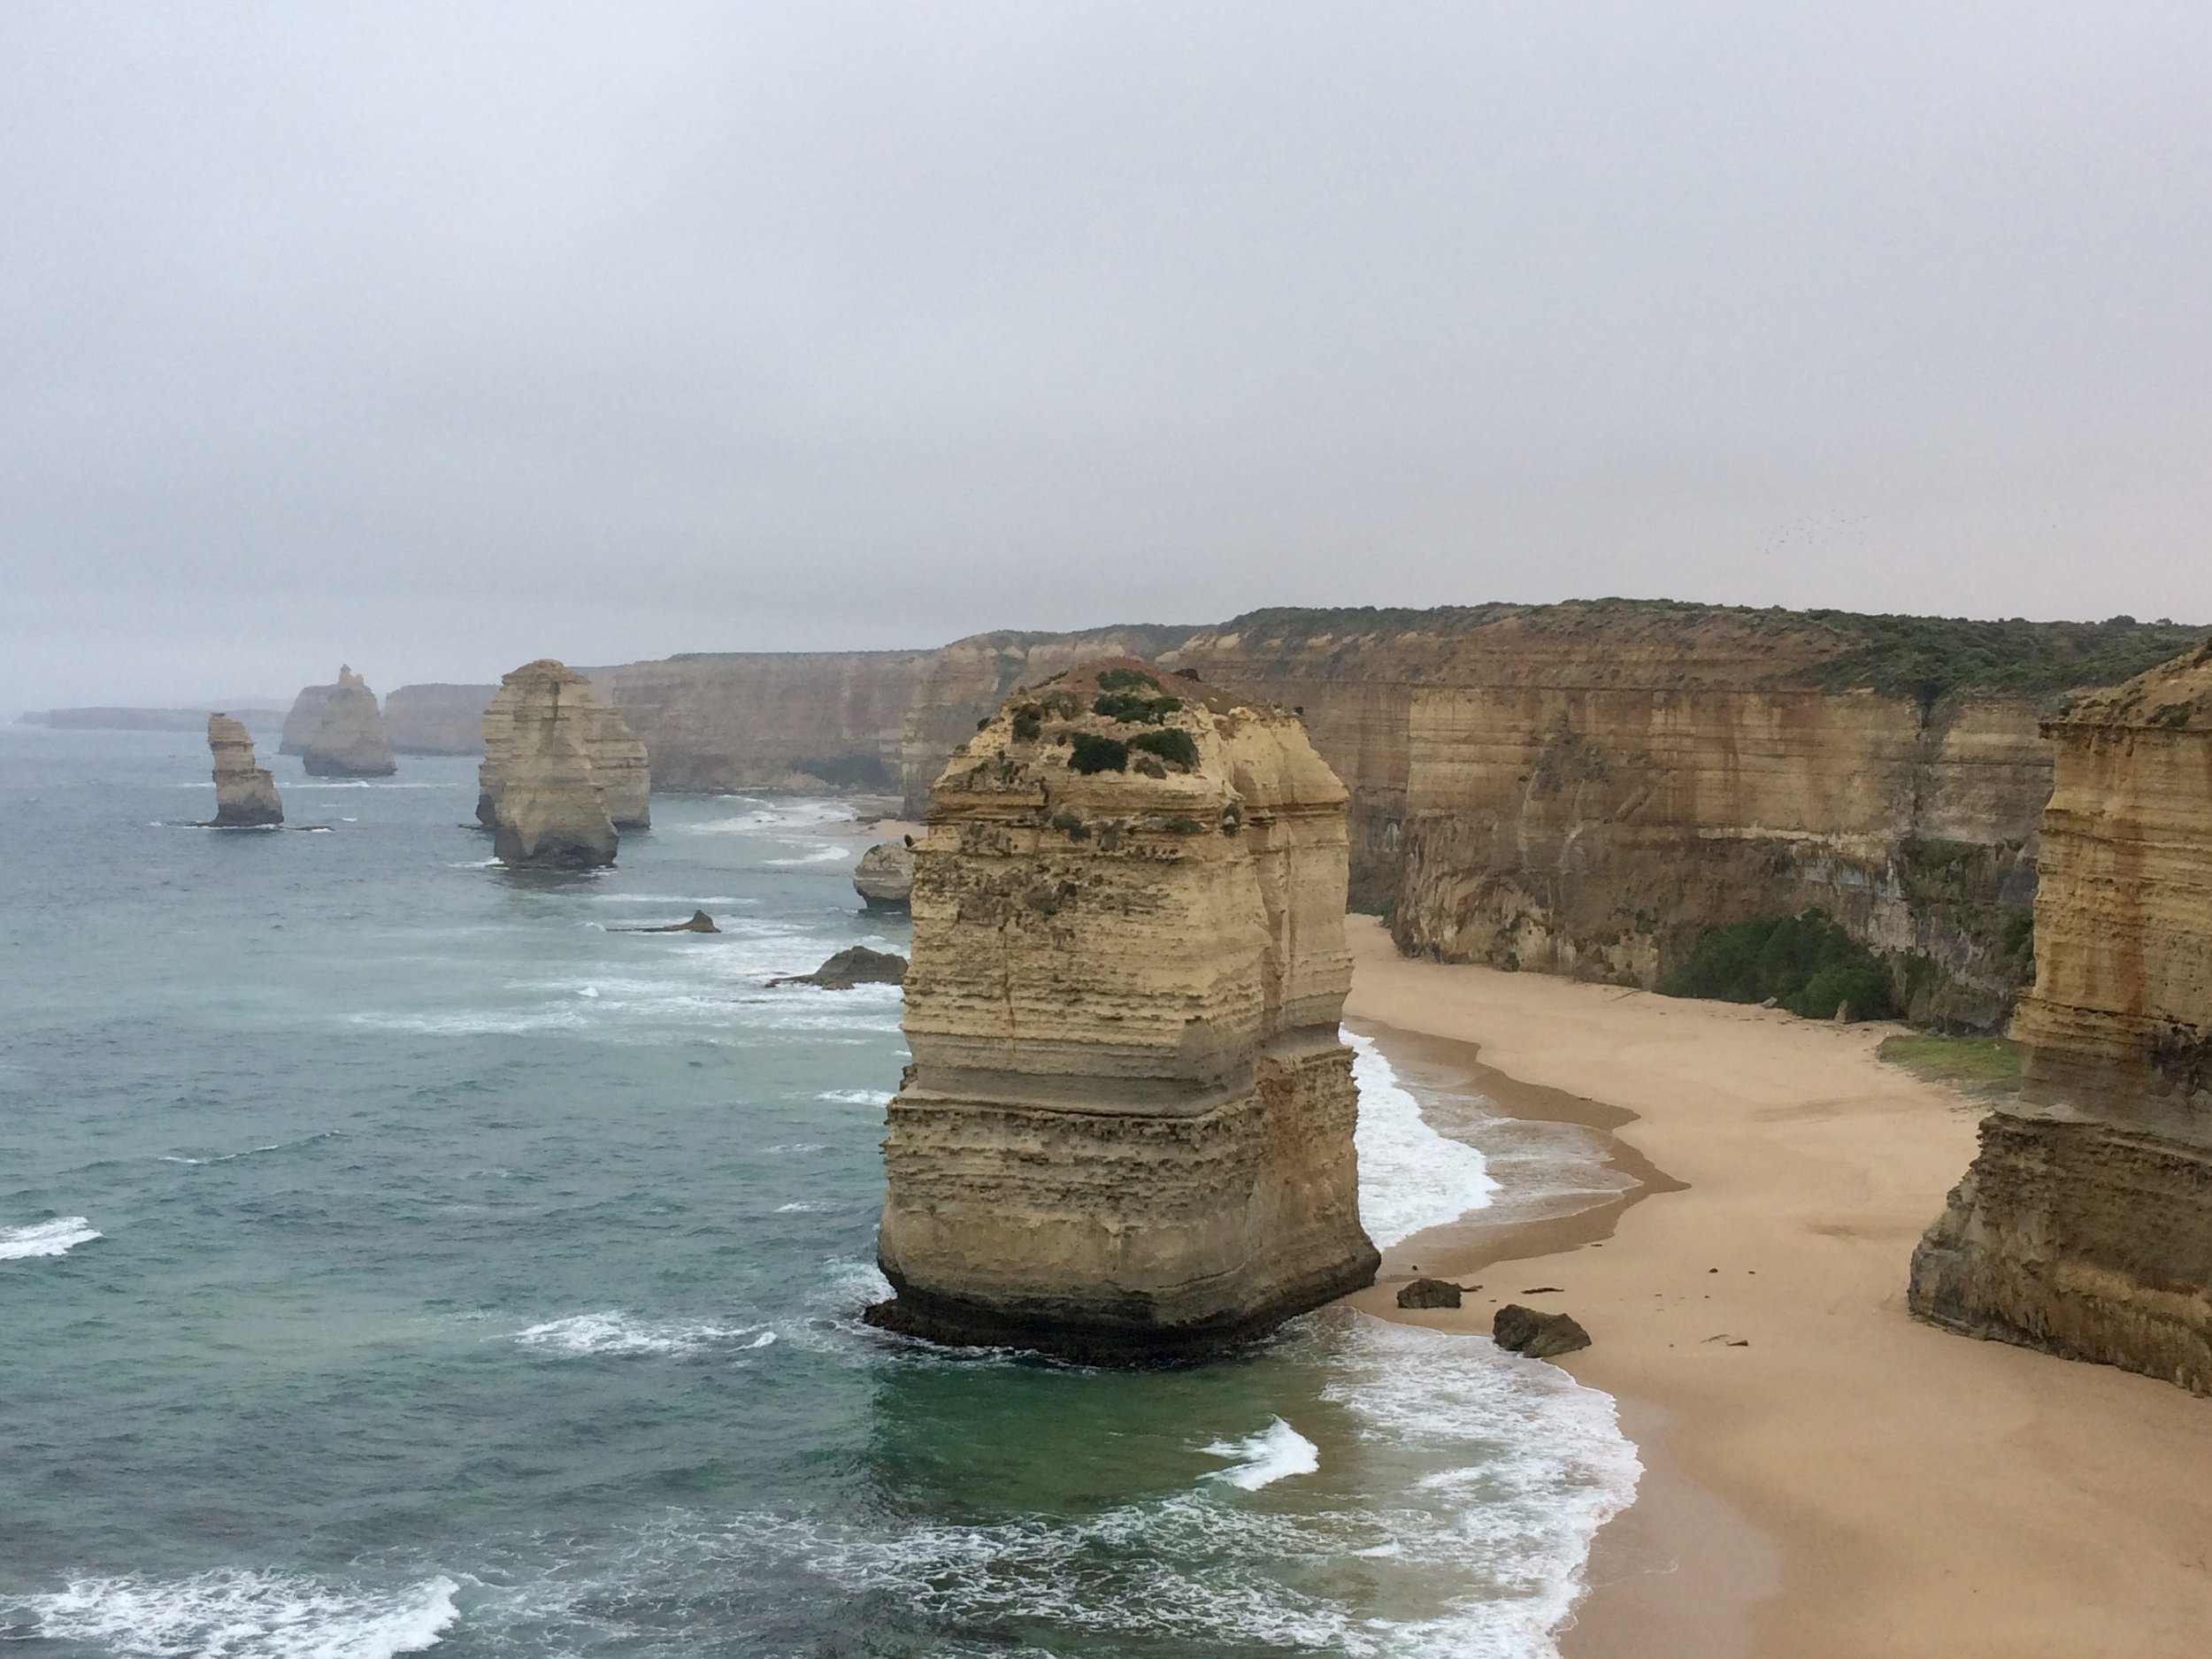 A few more of the Twelve Apostles.